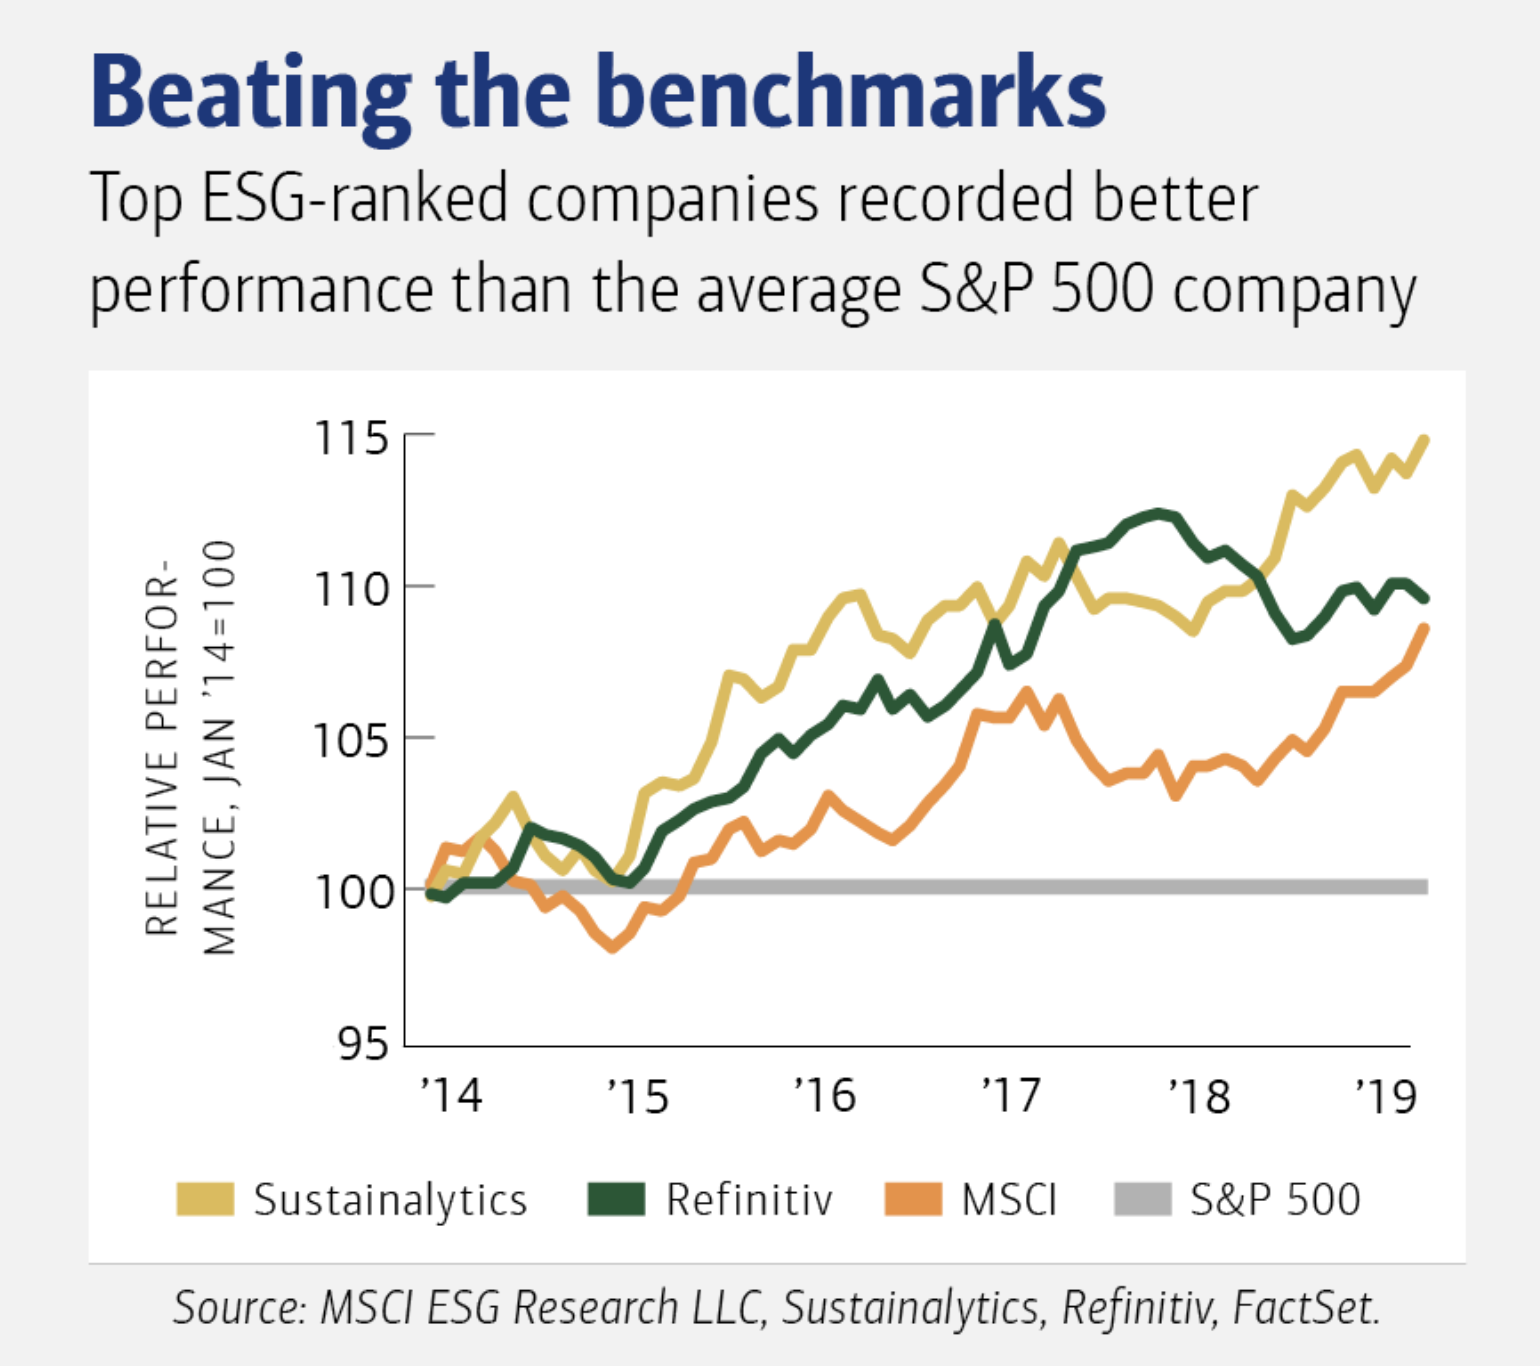 Companies with a strong focus on ESG outperform the usual benchmarks